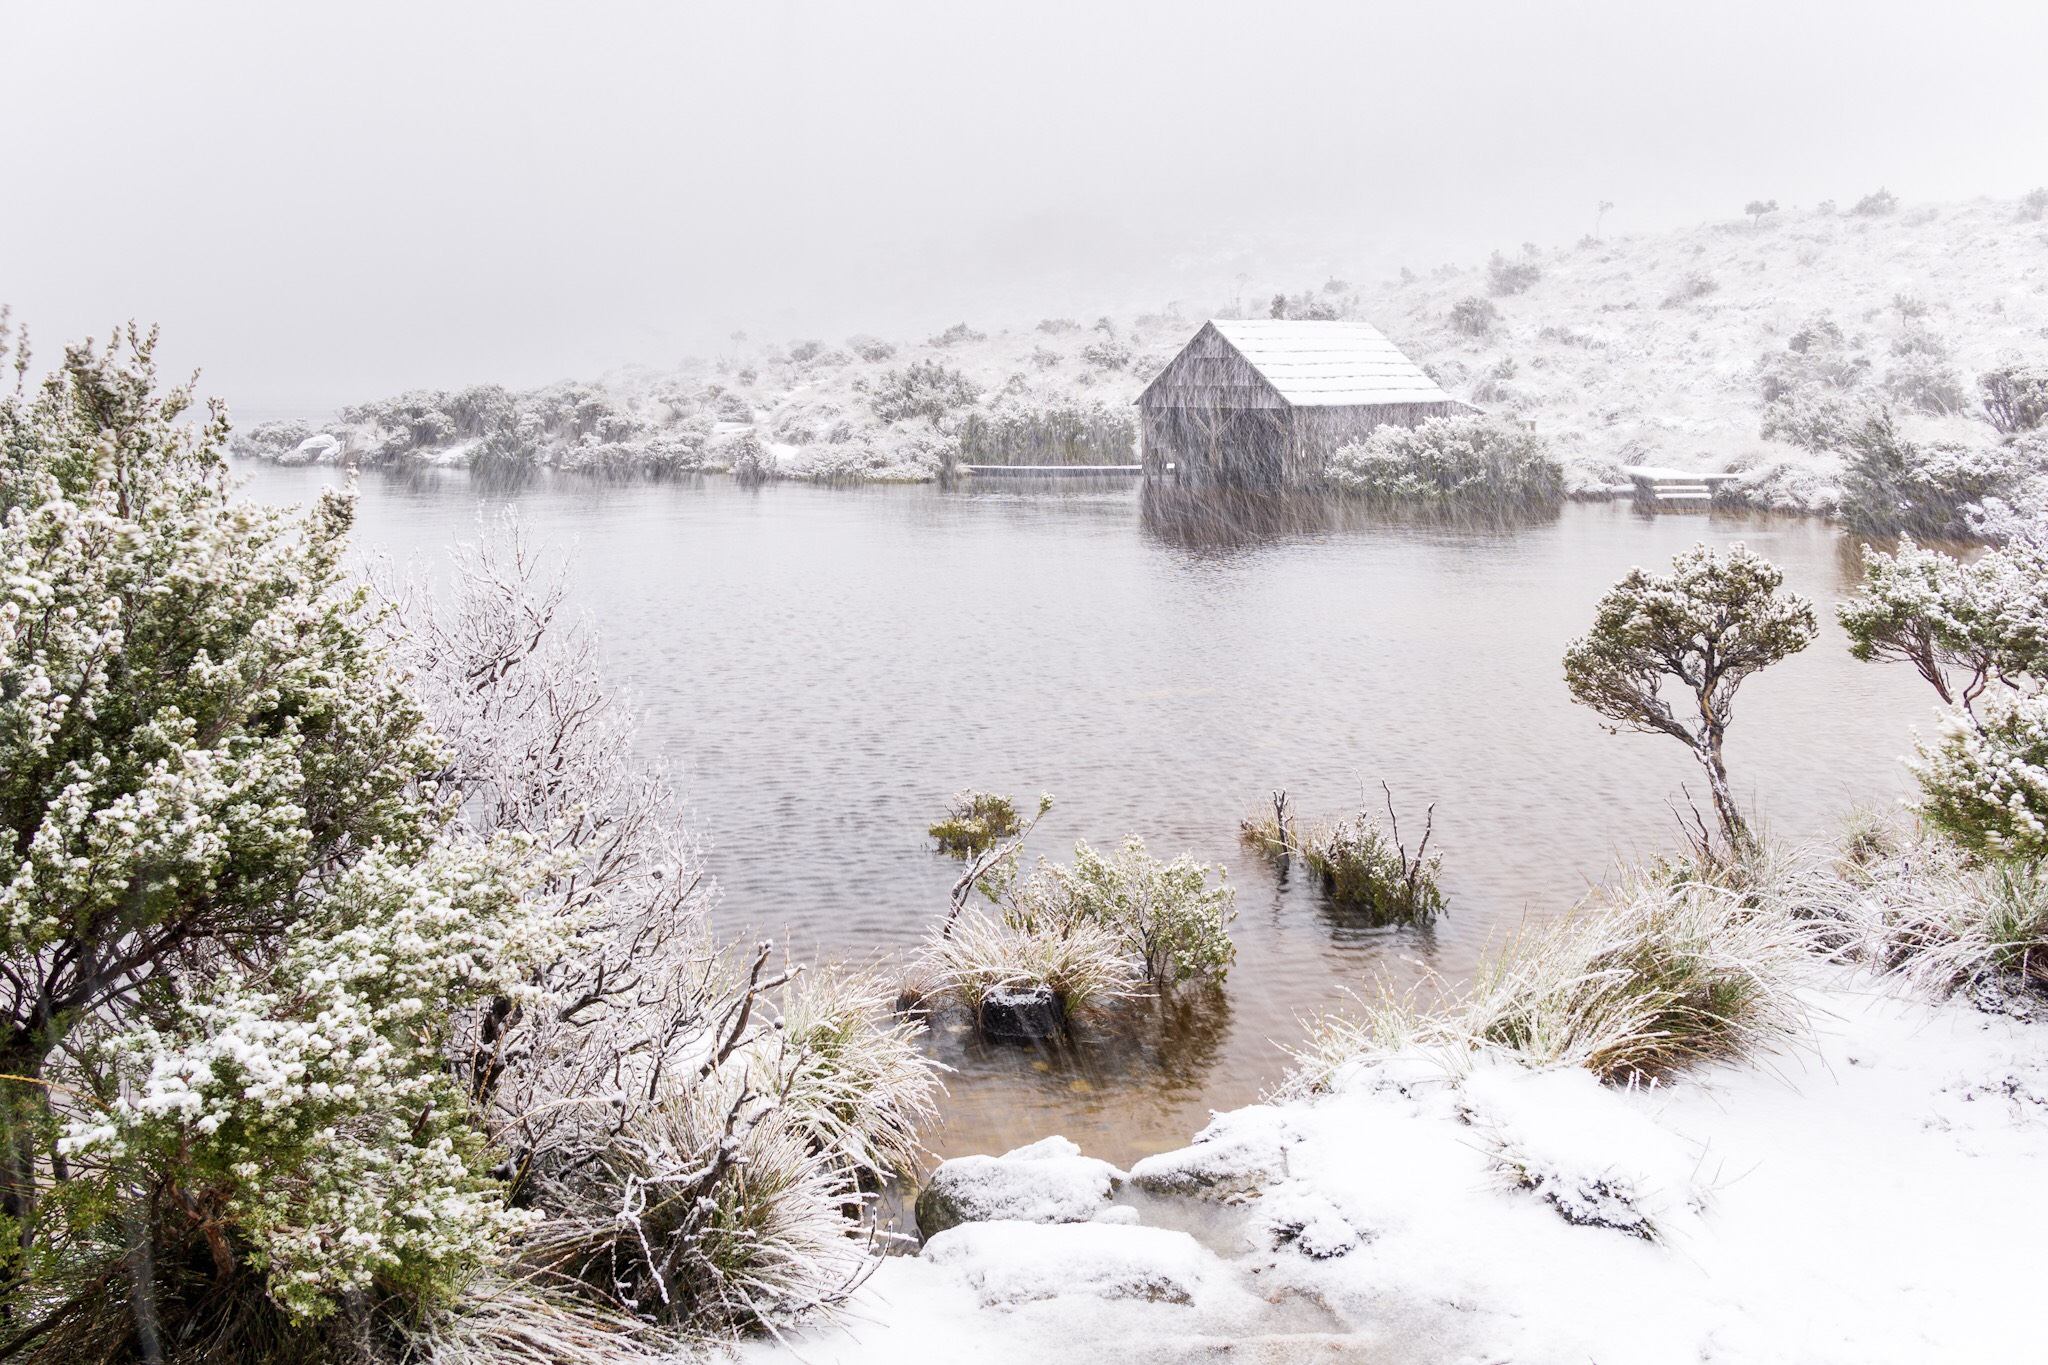 Boat Shed, Cradle Mountain, Tasmania by John Baba